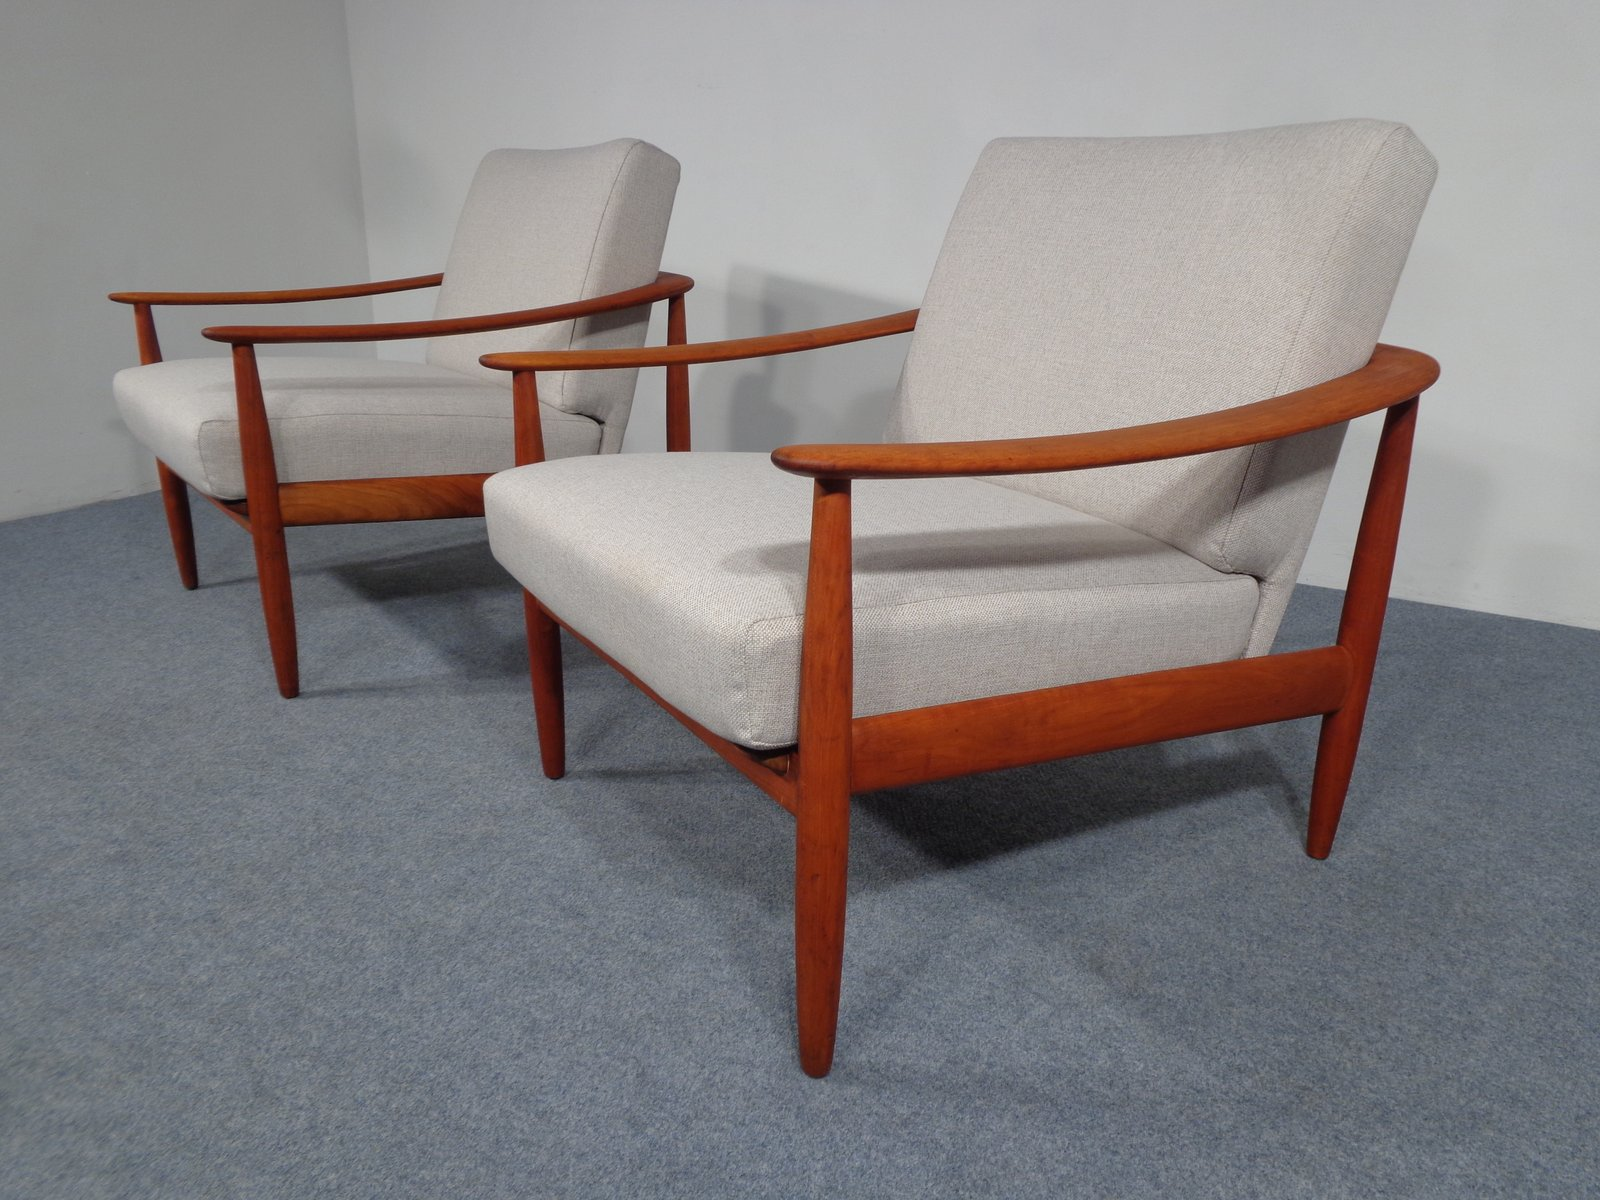 Mid Century Cherry Wood Arm Chairs from Knoll 1950s Set of 2 for